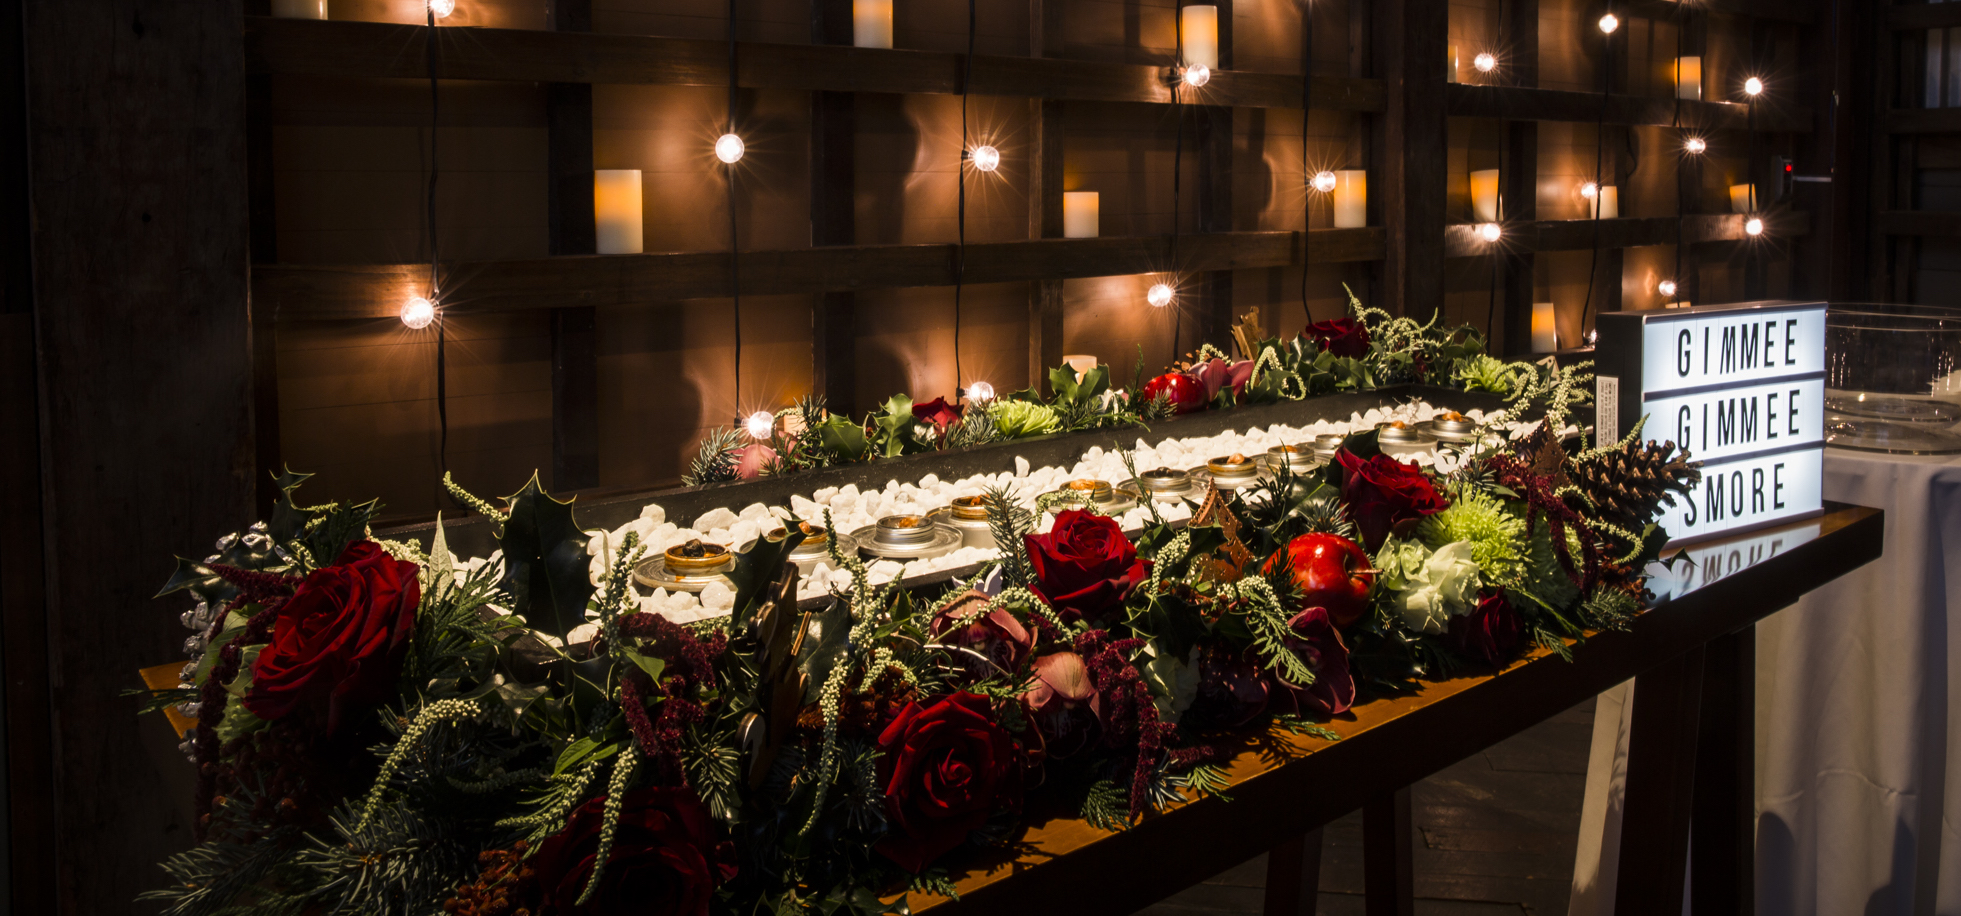 love, hope, flowers, lhflowers, wedding flowers, flowers, Sydney, Sydney florist, woollomooloo, red, roses, xmas, july, pine, cones, fire, corporate, function, lighting, holly